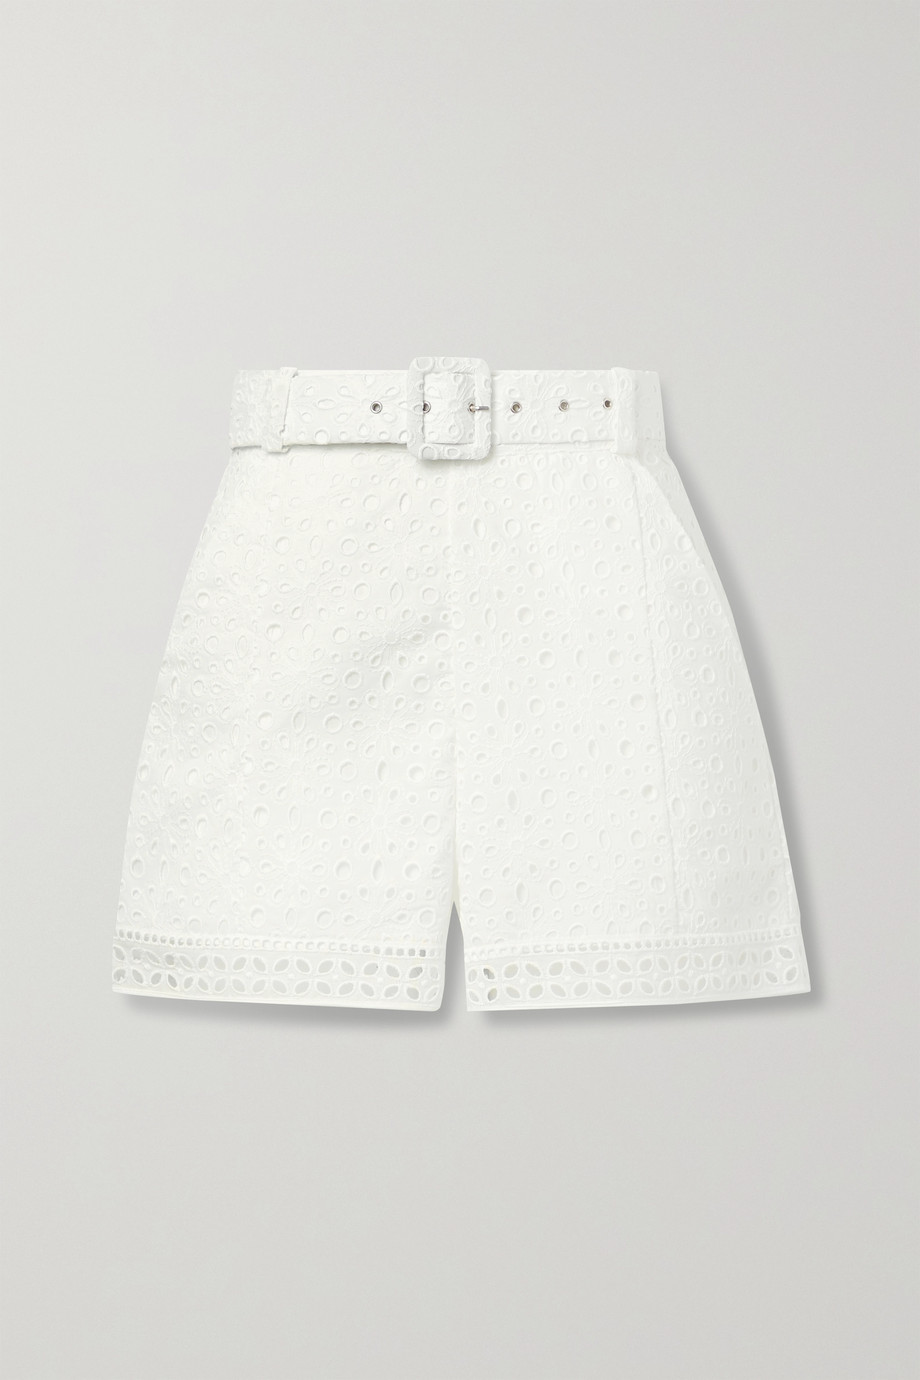 Charo Ruiz Olive belted broderie anglaise cotton-blend shorts